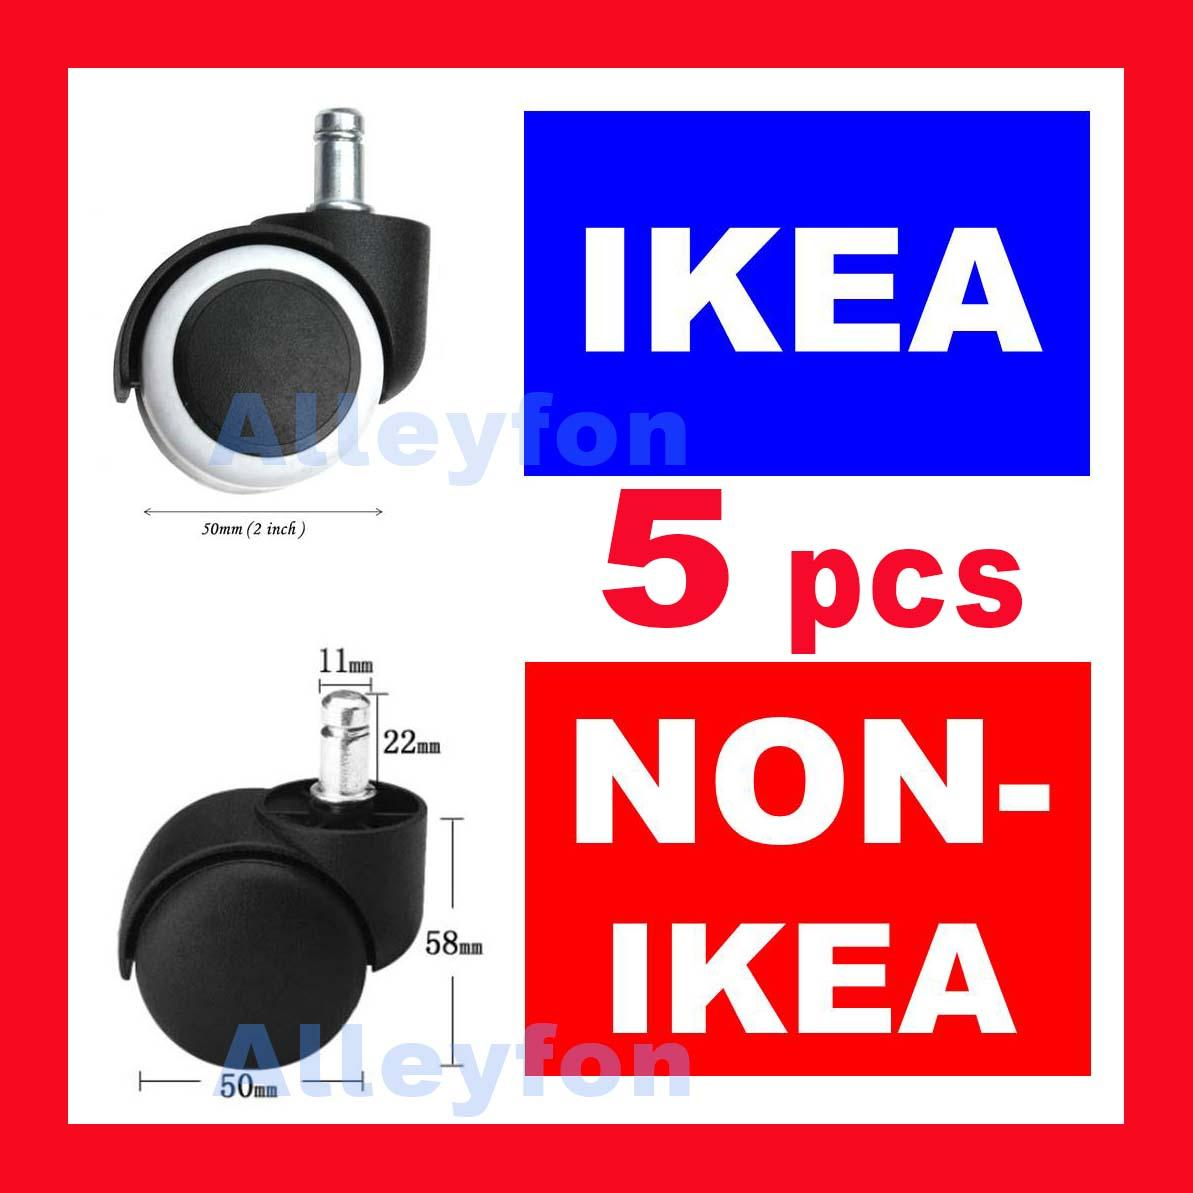 FAST SHIPPING ! 5 Wheels for IKEA and non-ikea swivel roller office chair study leg stool caster castors frame wheel universal chairs